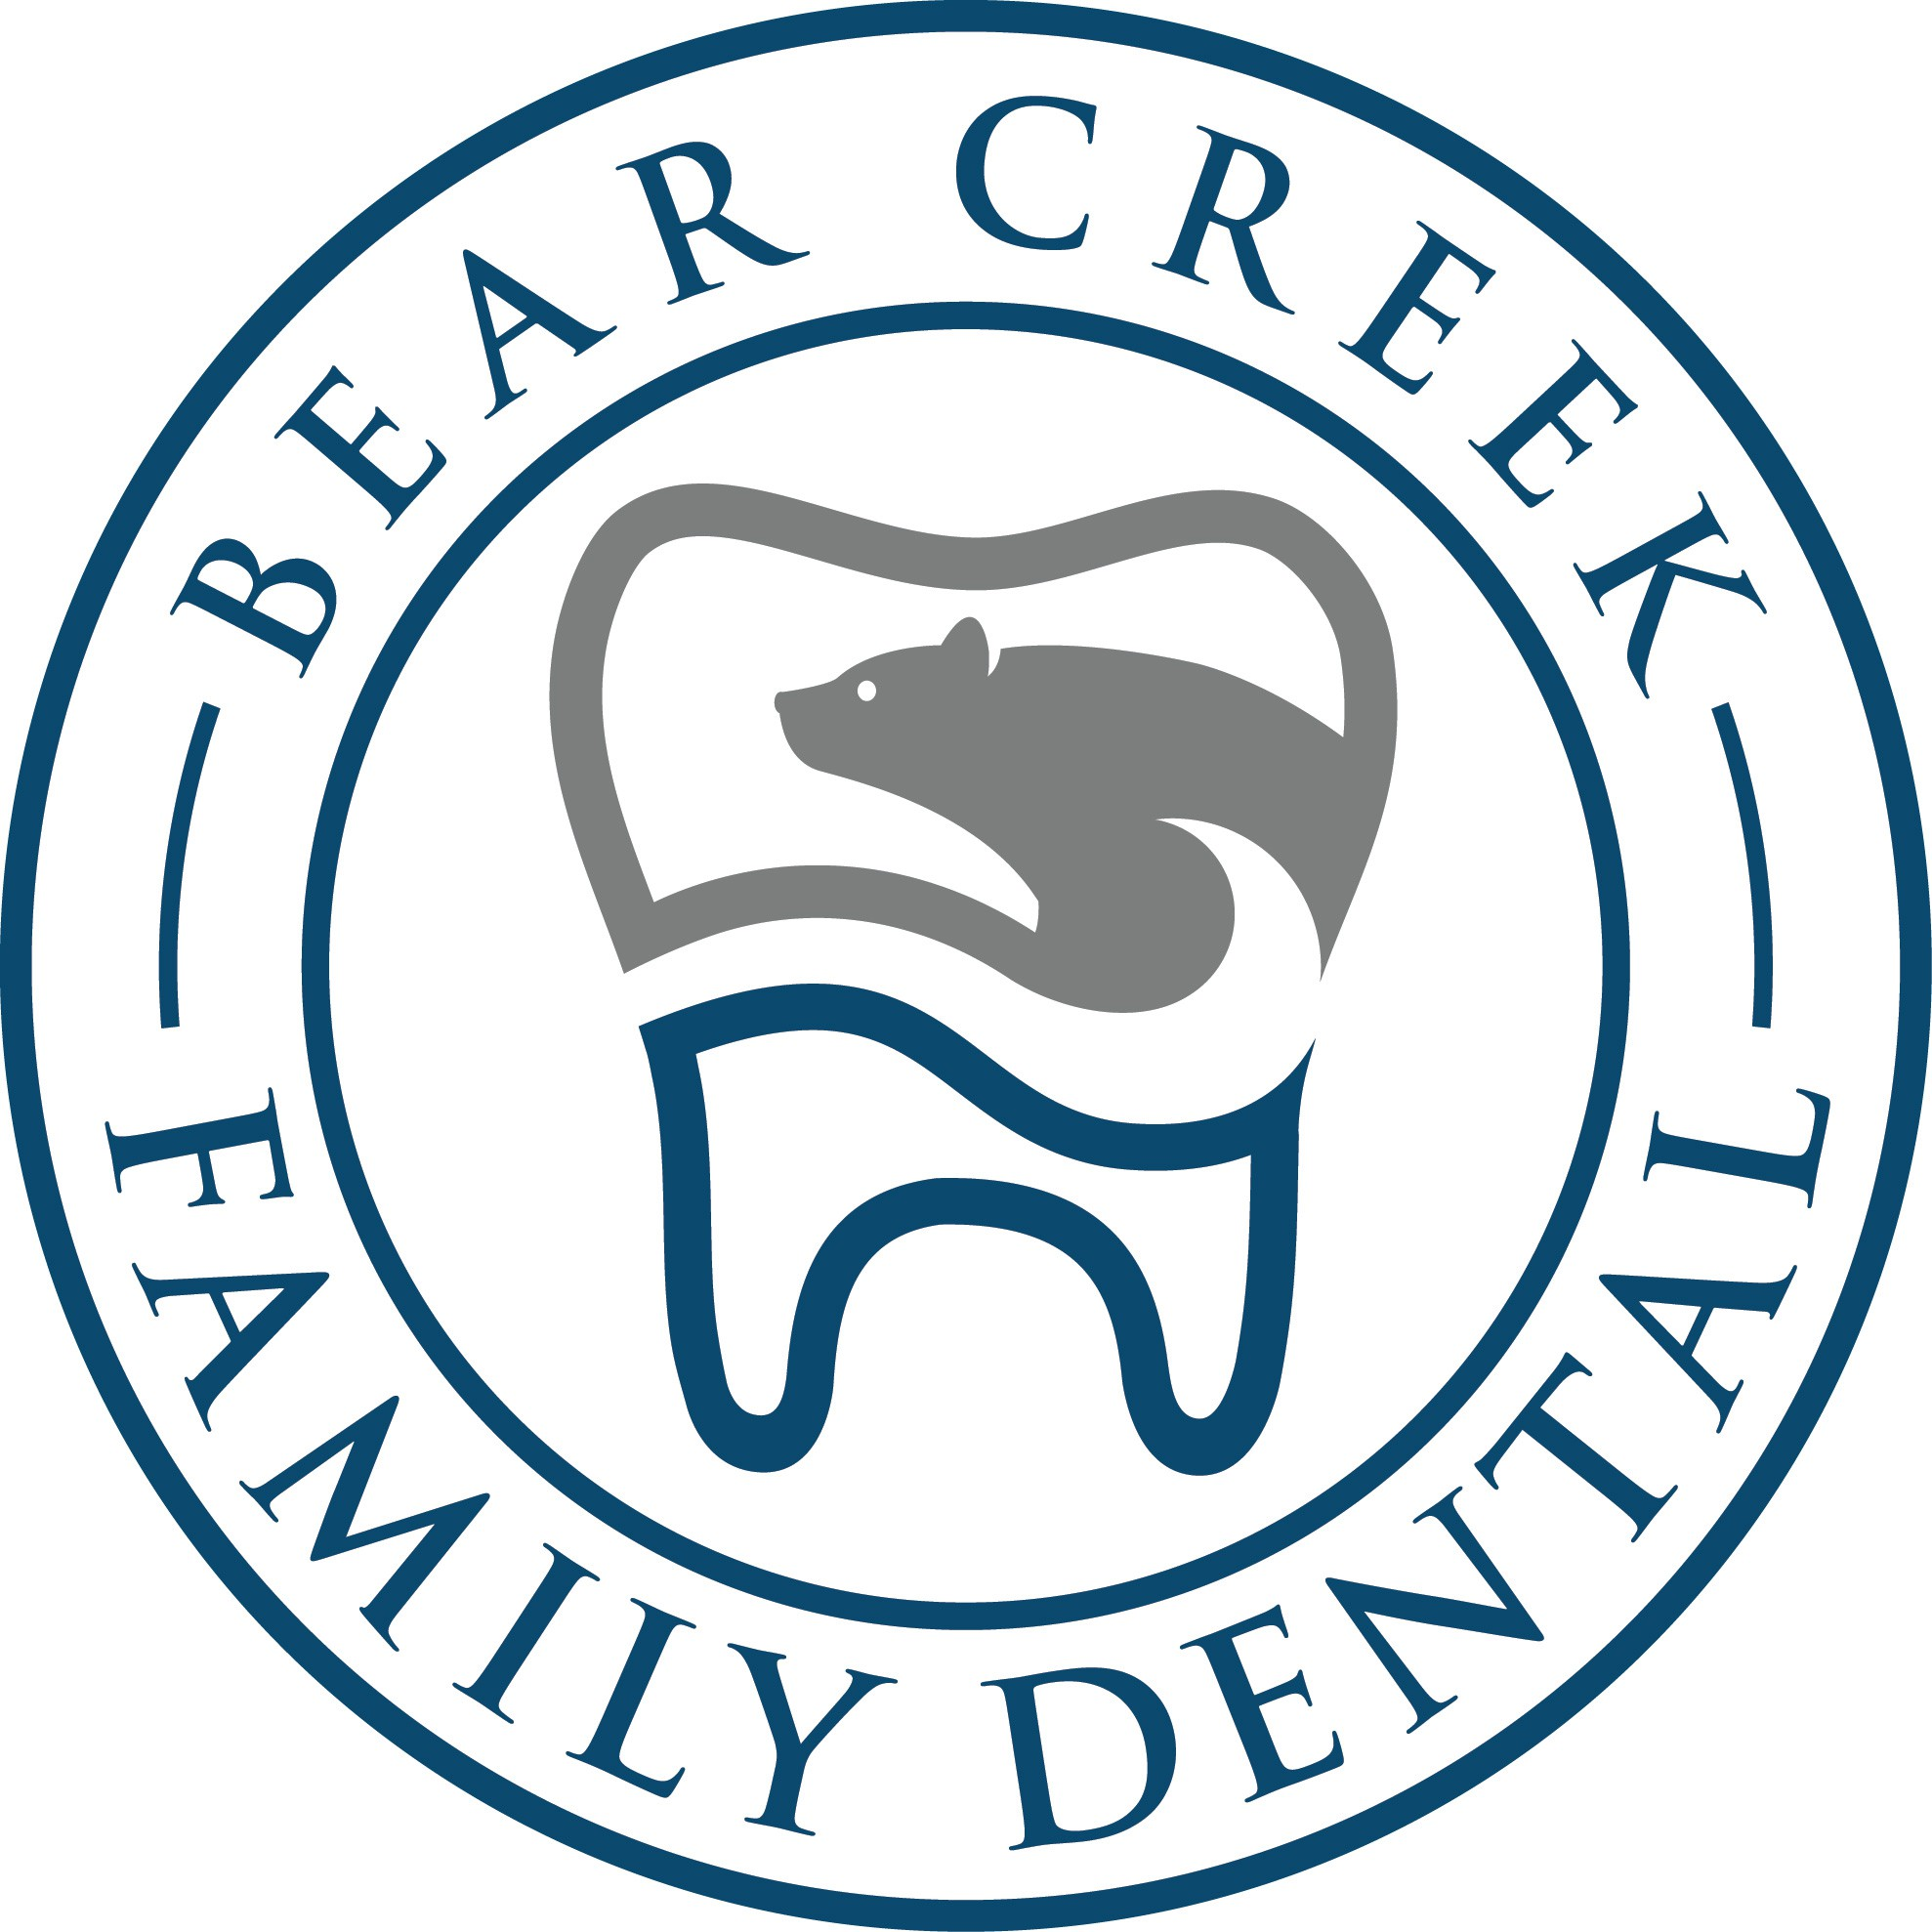 Bear Creek Family Dental Needs a Great Logo to Kick Start Our Practice!